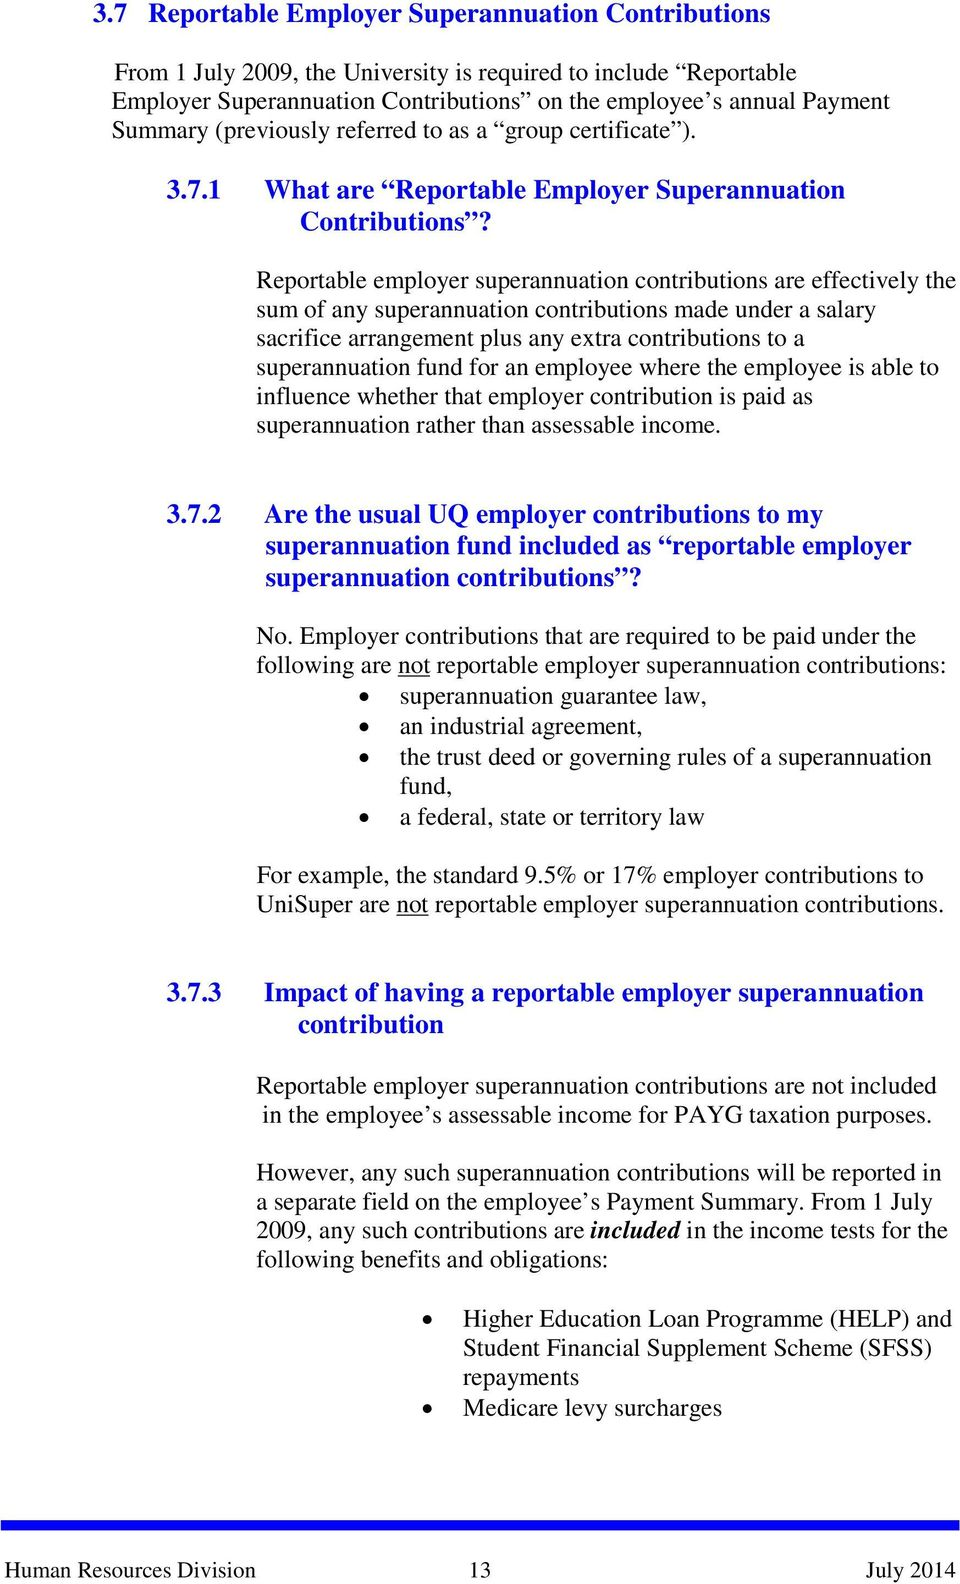 Reportable employer superannuation contributions are effectively the sum of any superannuation contributions made under a salary sacrifice arrangement plus any extra contributions to a superannuation